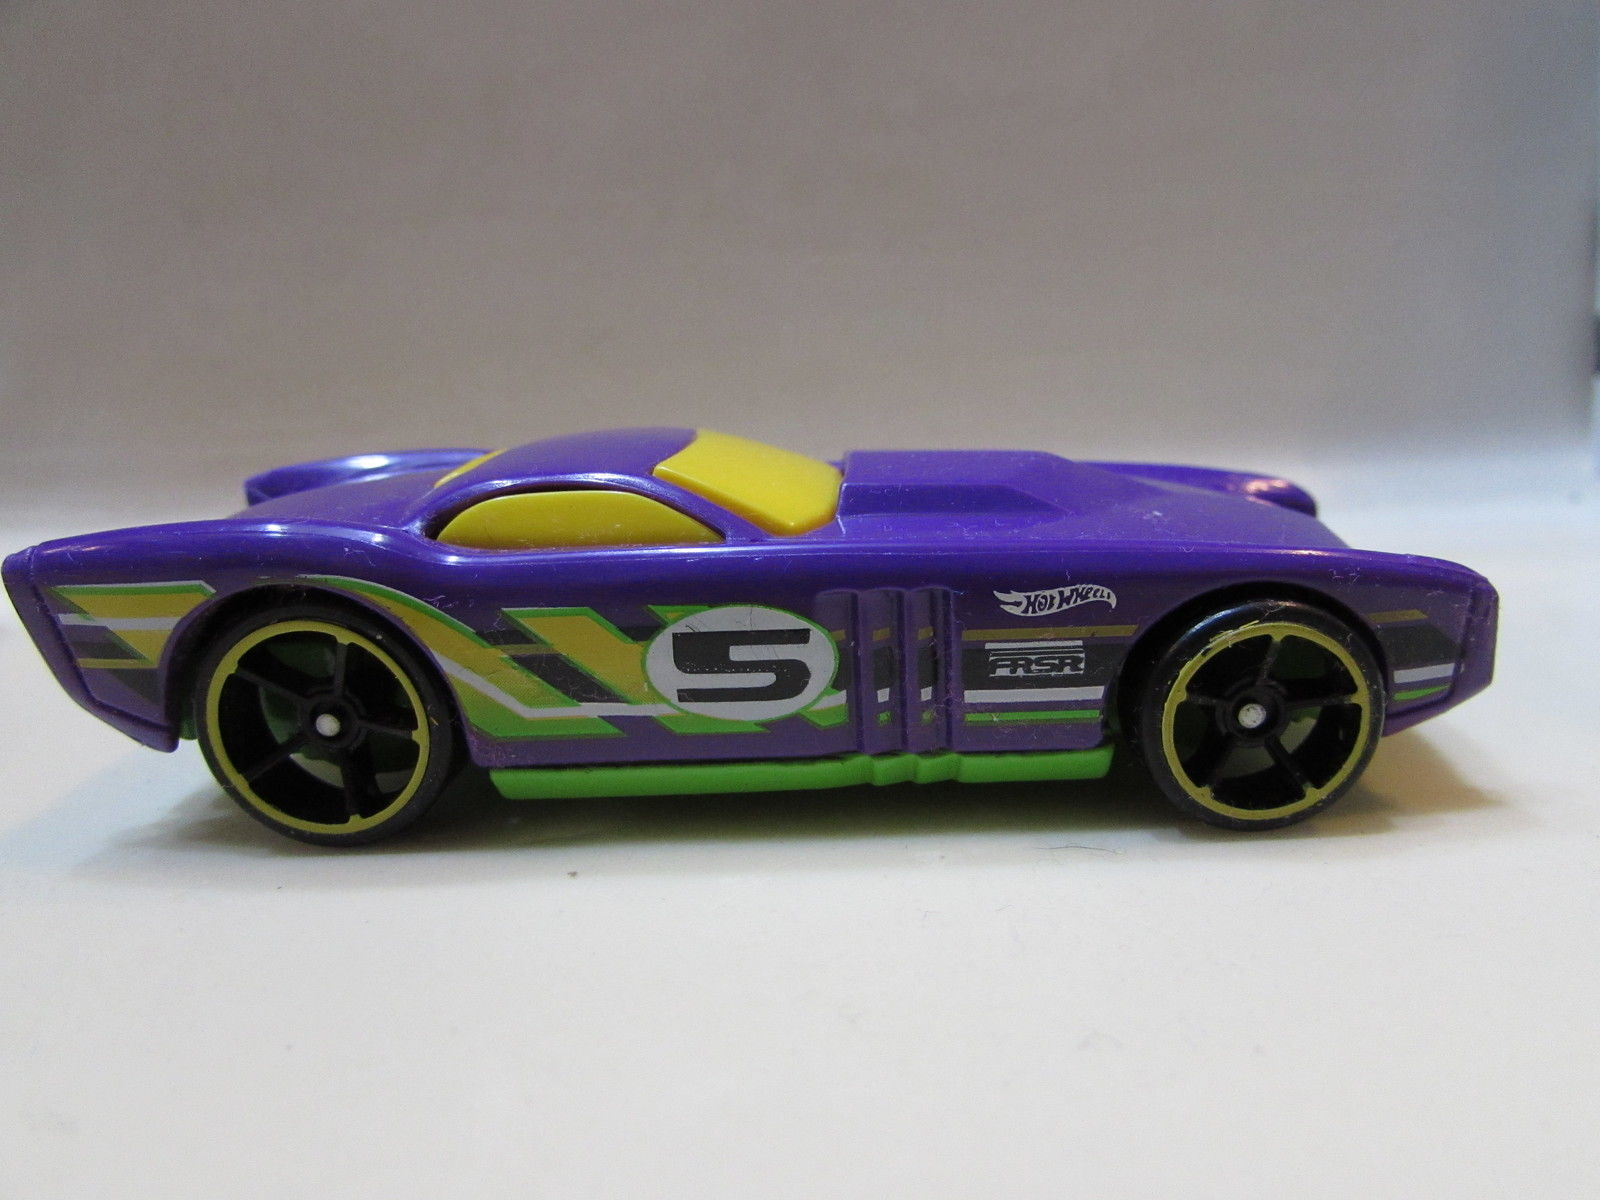 HOT WHEELS FROM 5 CAR PACK THE GOV' NER LOOSE